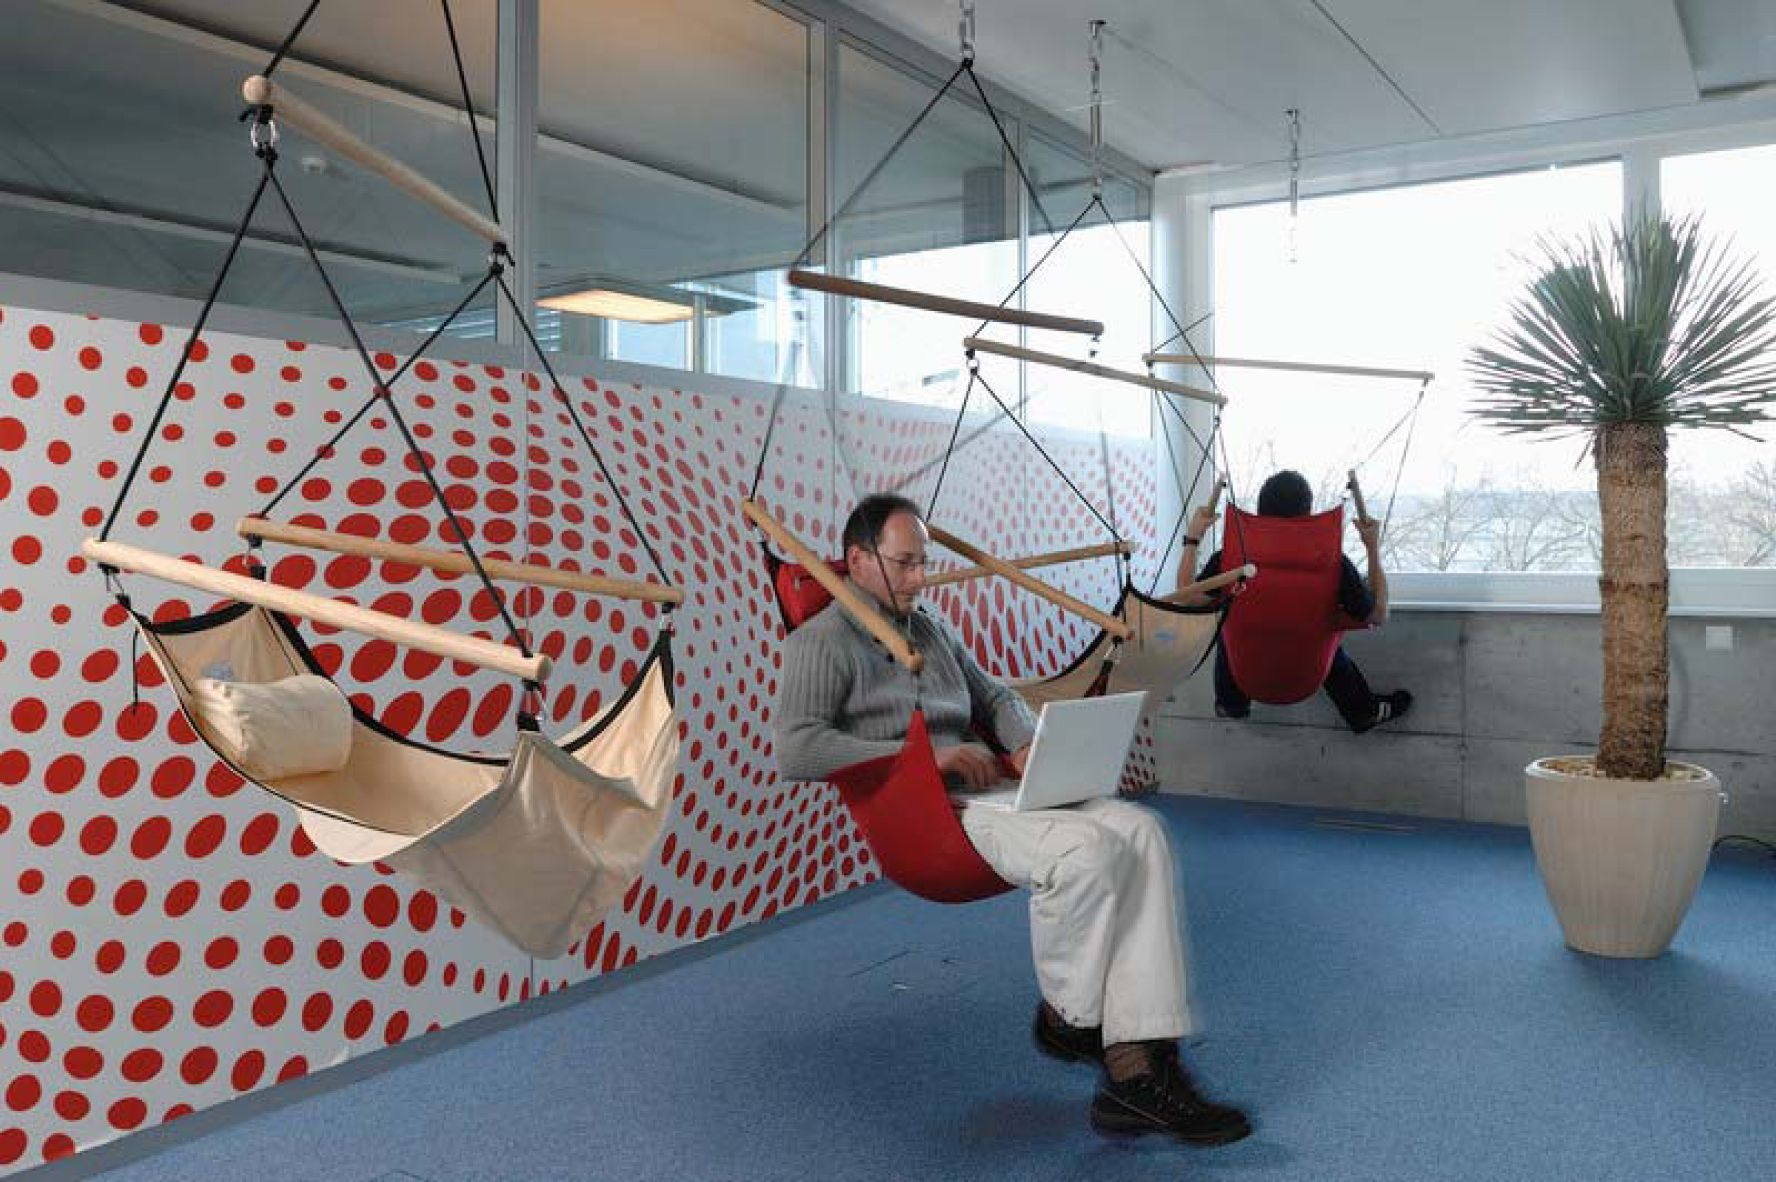 google london office 1000 images about google offices on pinterest google office offices and google belgrave house google london office